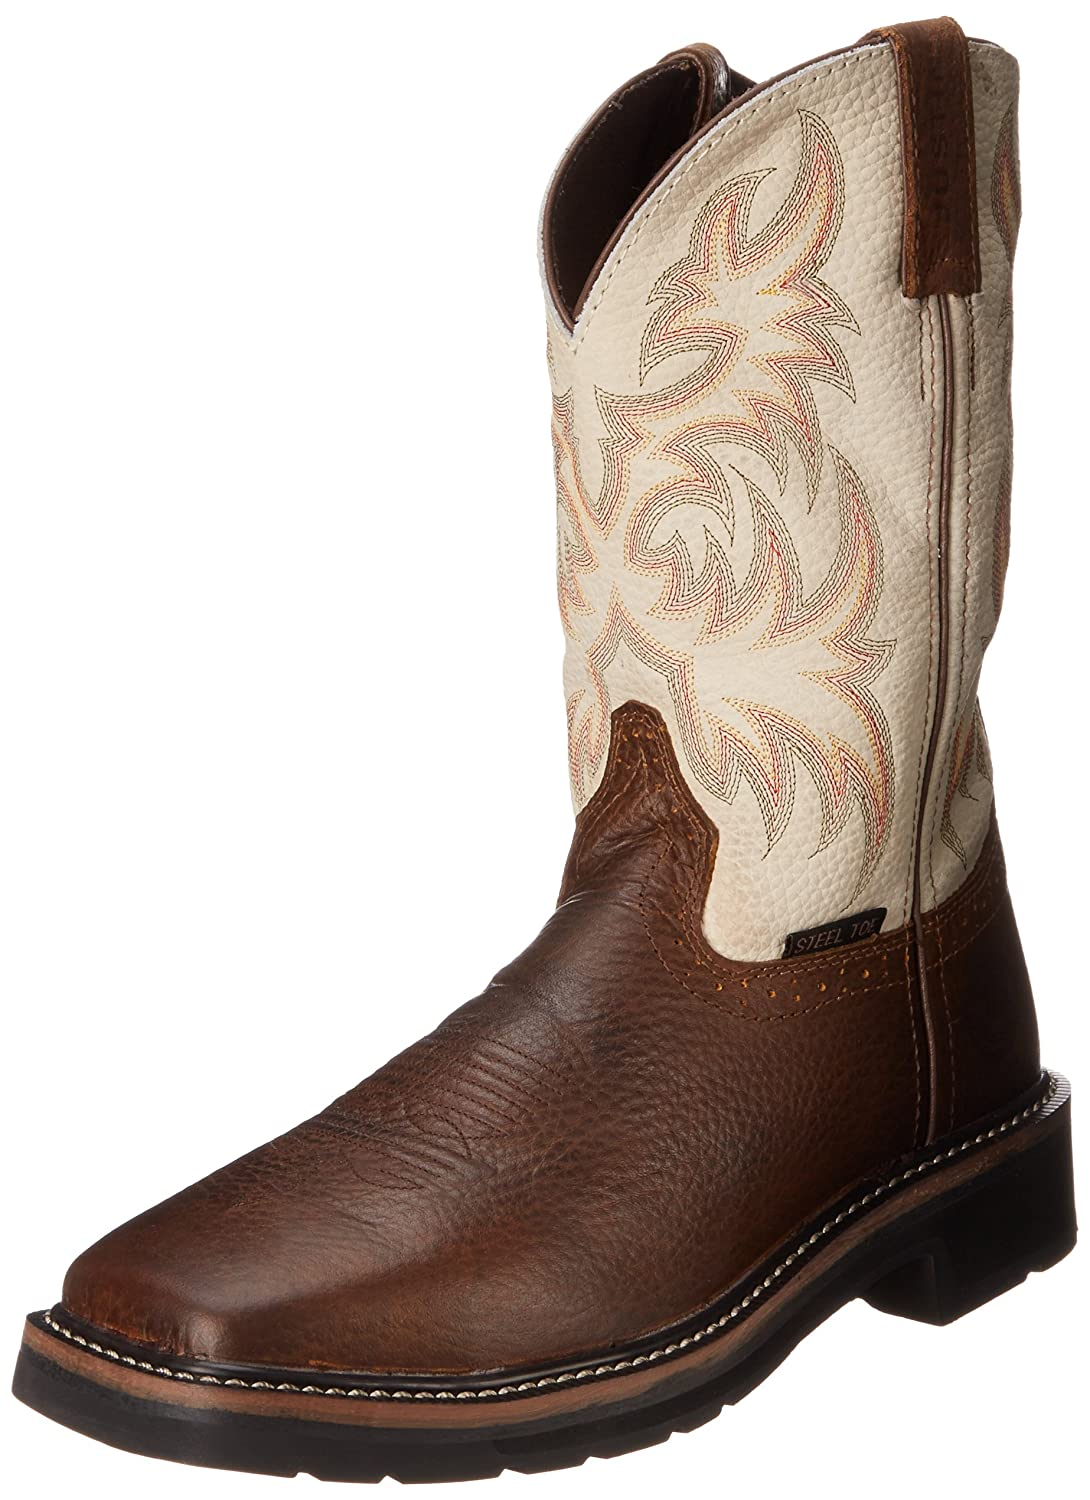 539c6cde094 Justin Original Work Boots Men's Stampede Boot